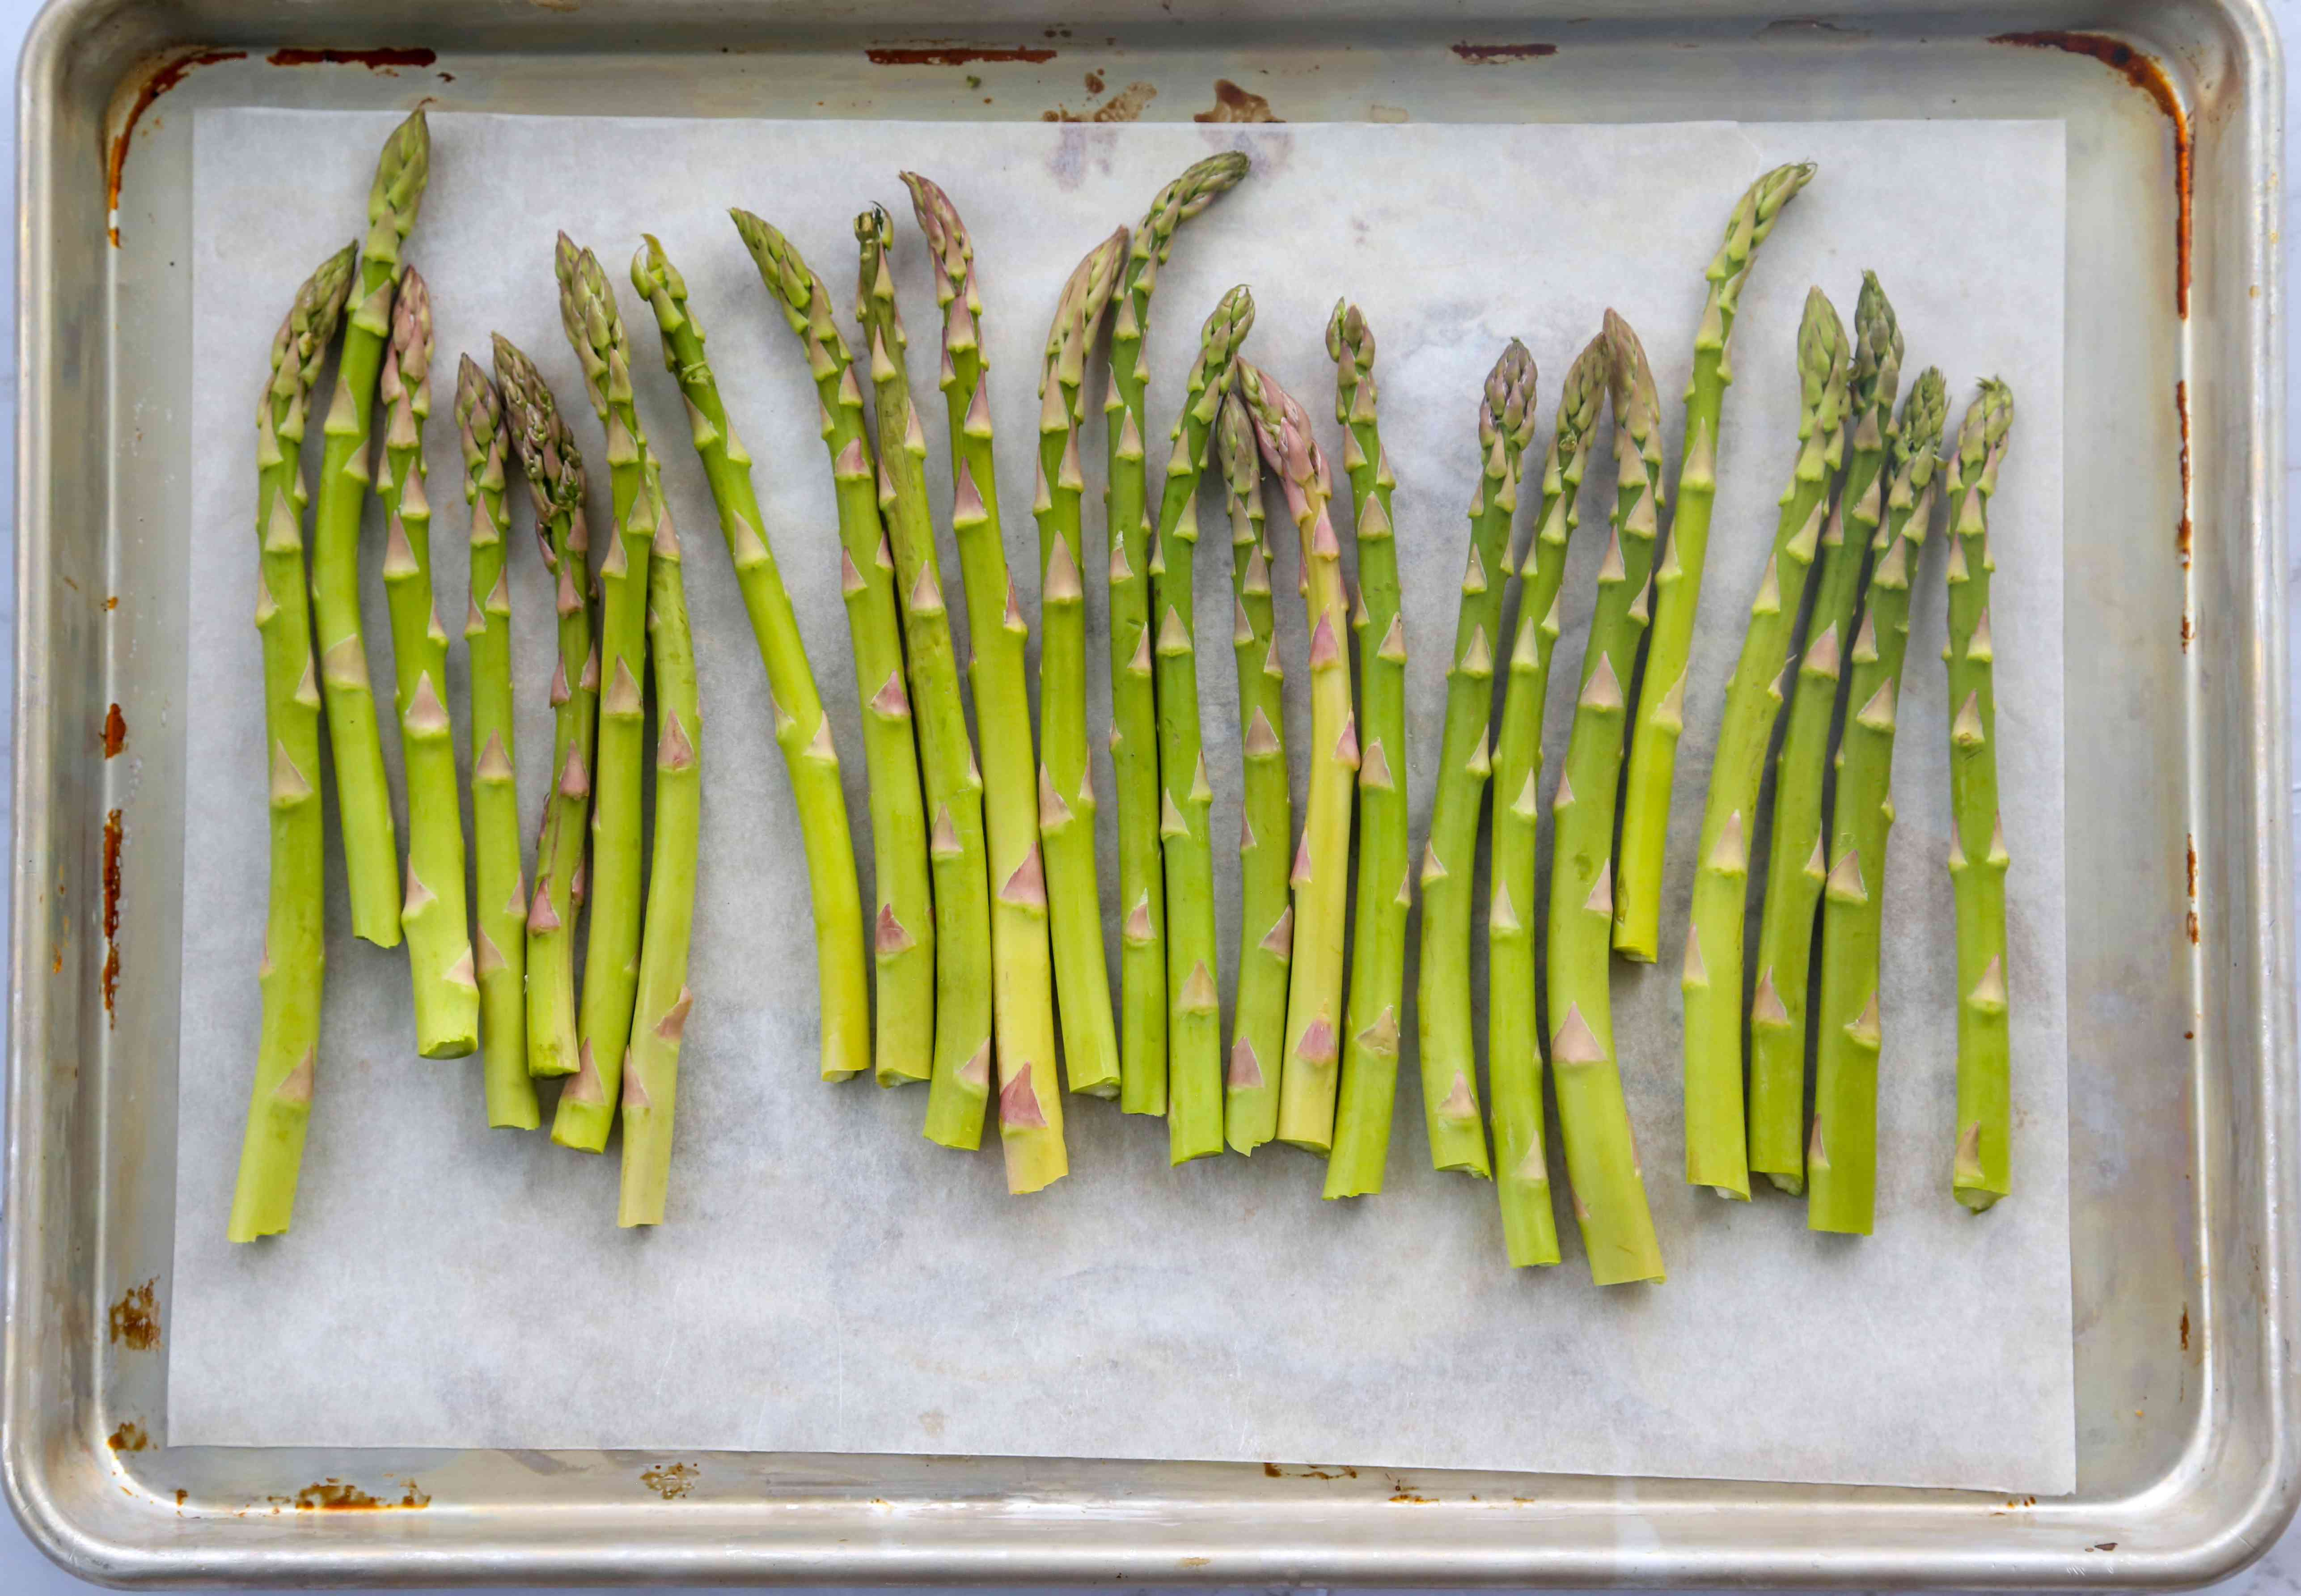 Lay the asparagus spears in a single layer in a baking dish